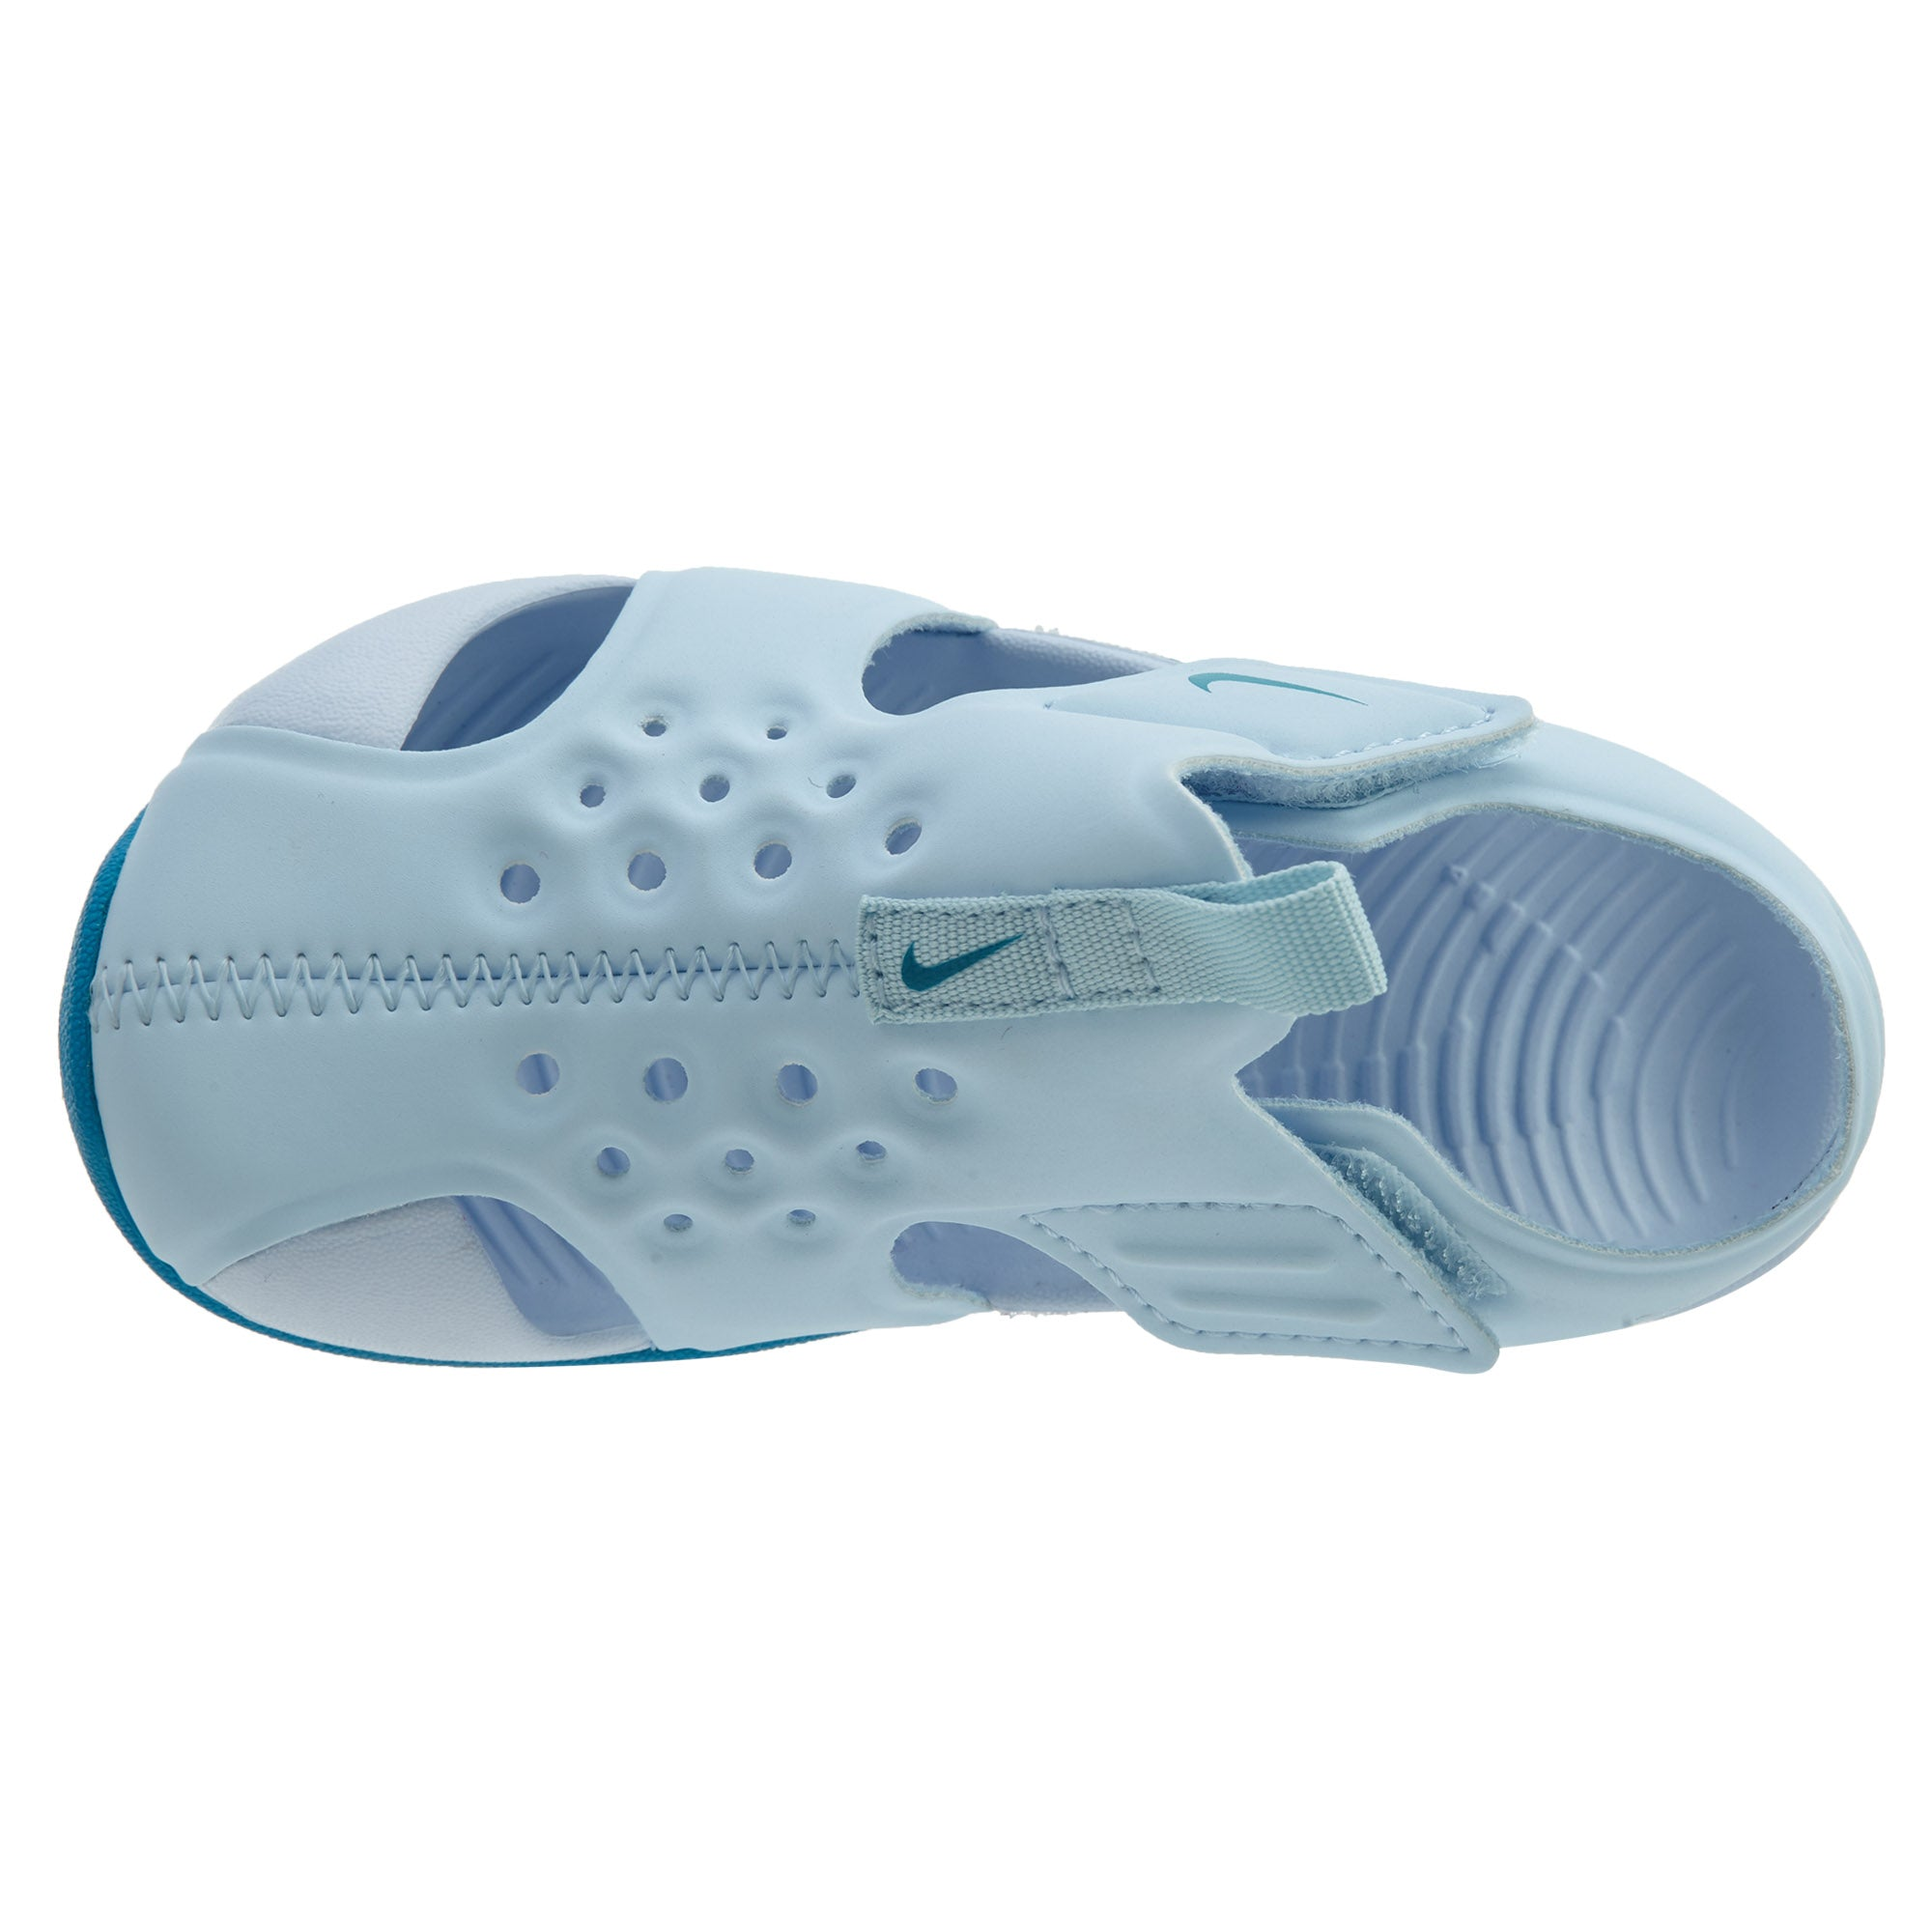 95f8639e4e1f Nike Sunray Protect 2 Toddlers Style   943829 - 734 Kicks